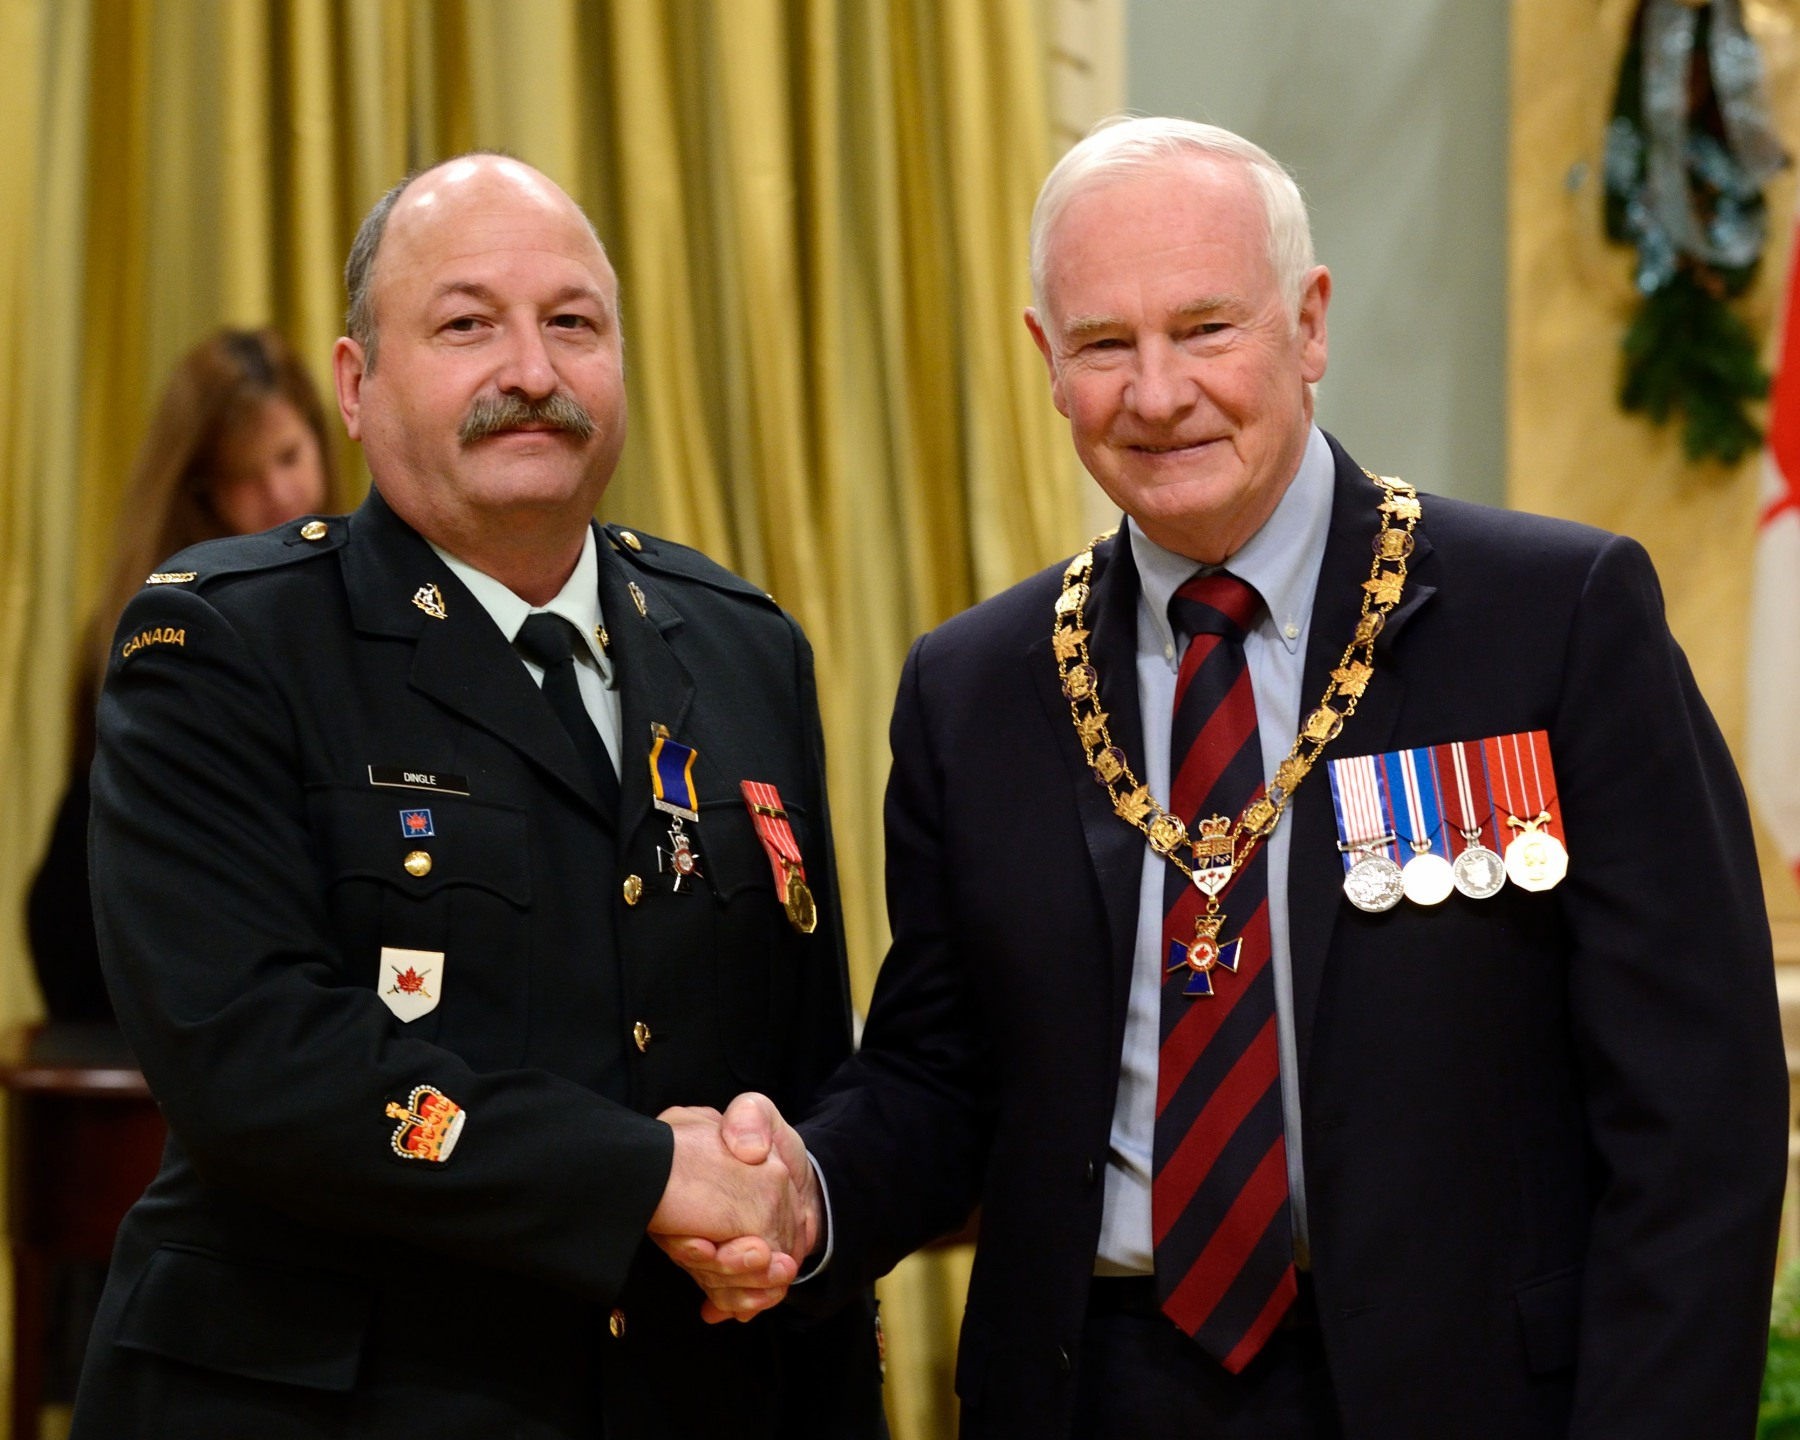 His Excellency presented the Order of Military Merit at the Member level (M.M.M.) to Warrant Officer Peter Dingle, M.M.M., C.D., Land Force Area Training Centre Detachment Aldershot (Kentville, N.S.).